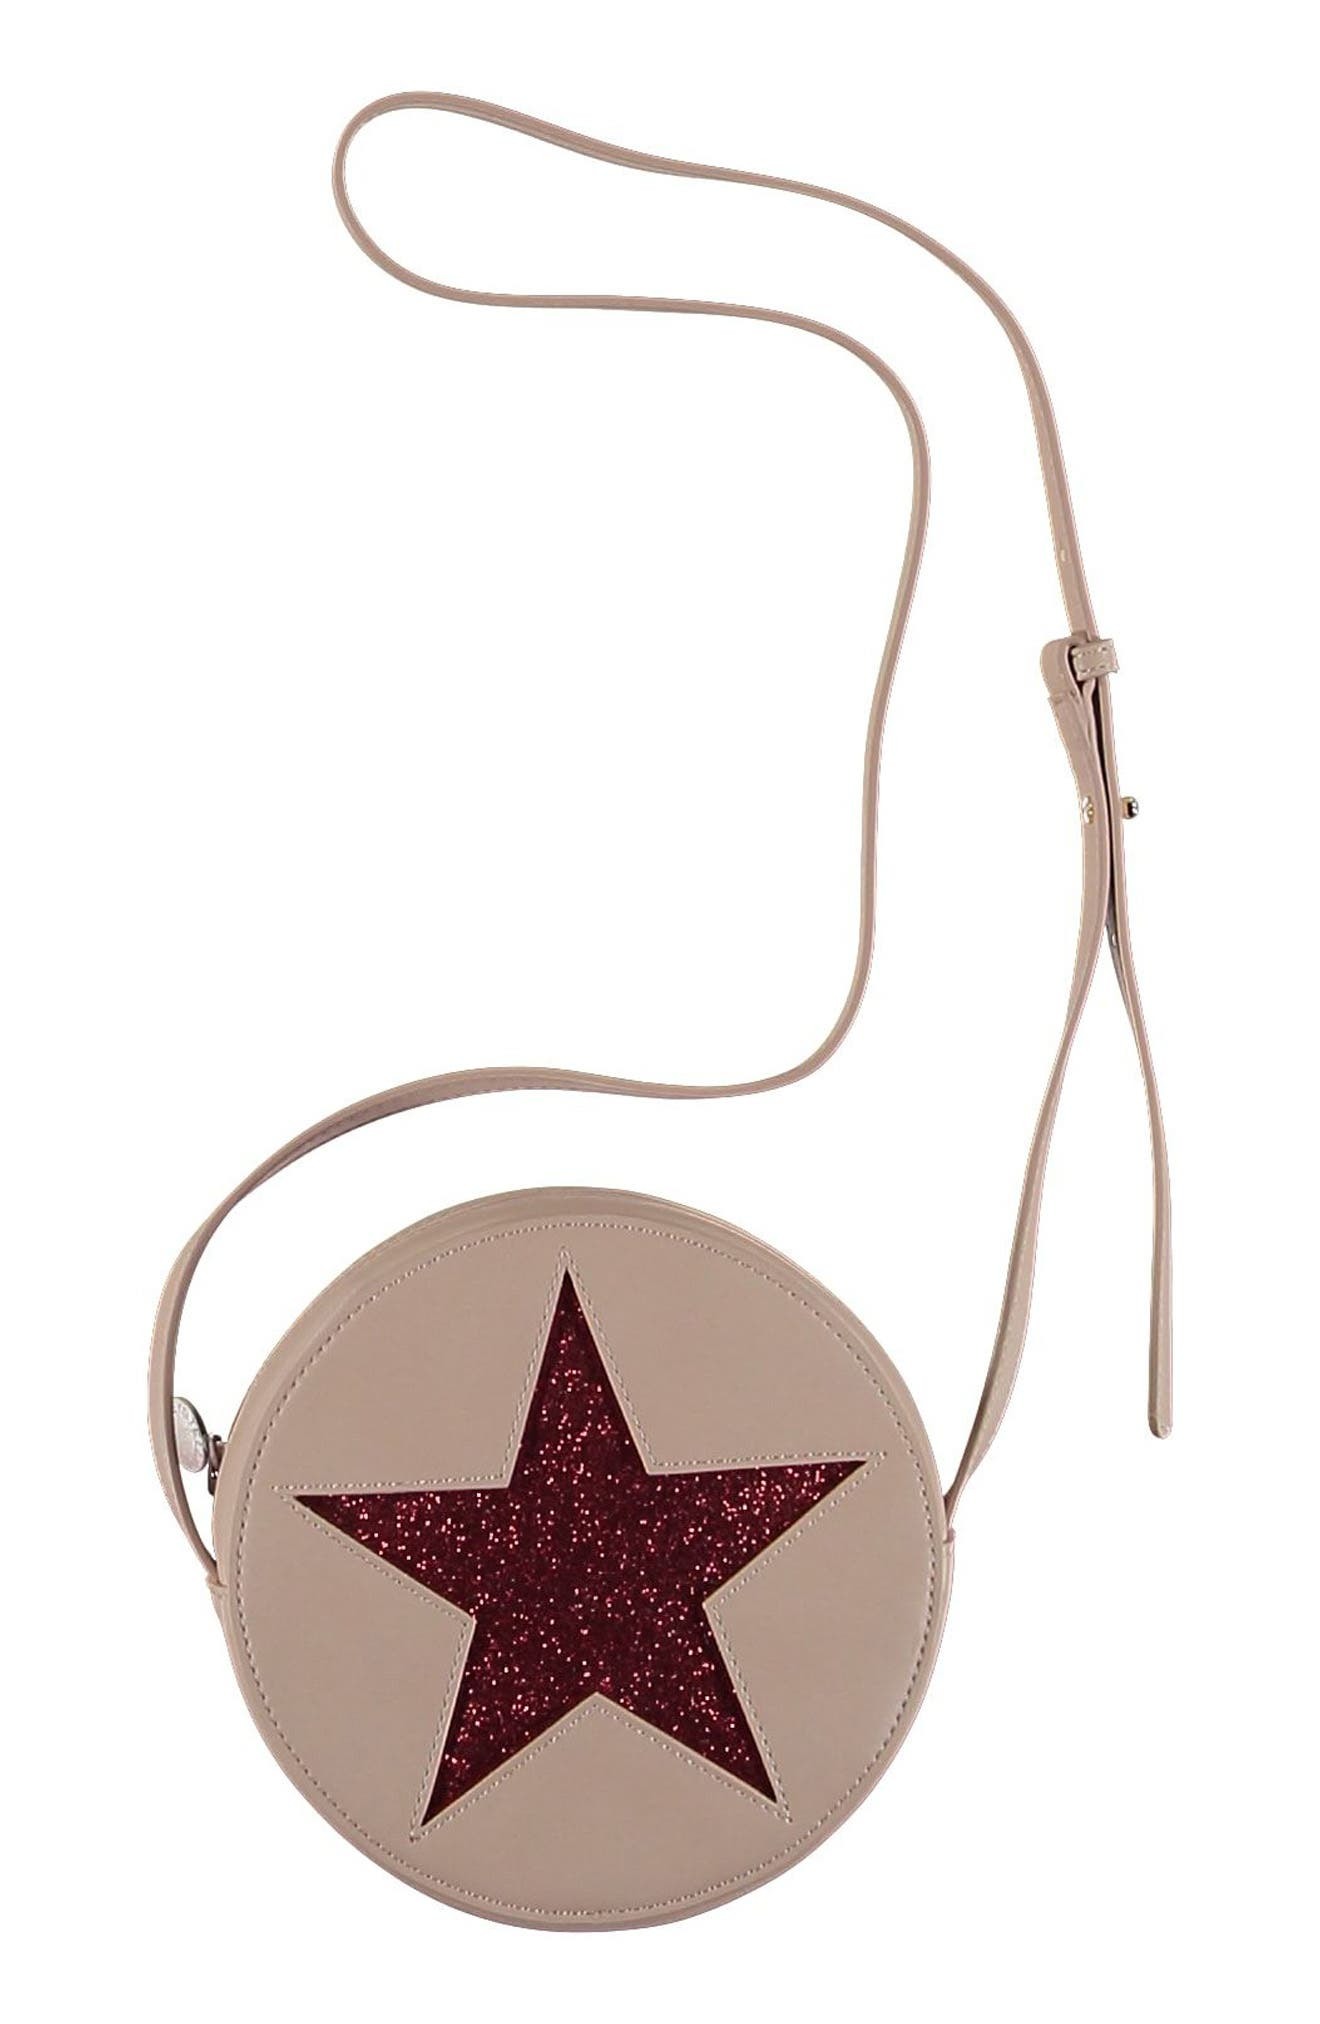 Glitter Star Faux Leather Crossbody Bag,                         Main,                         color, 5768 PINK